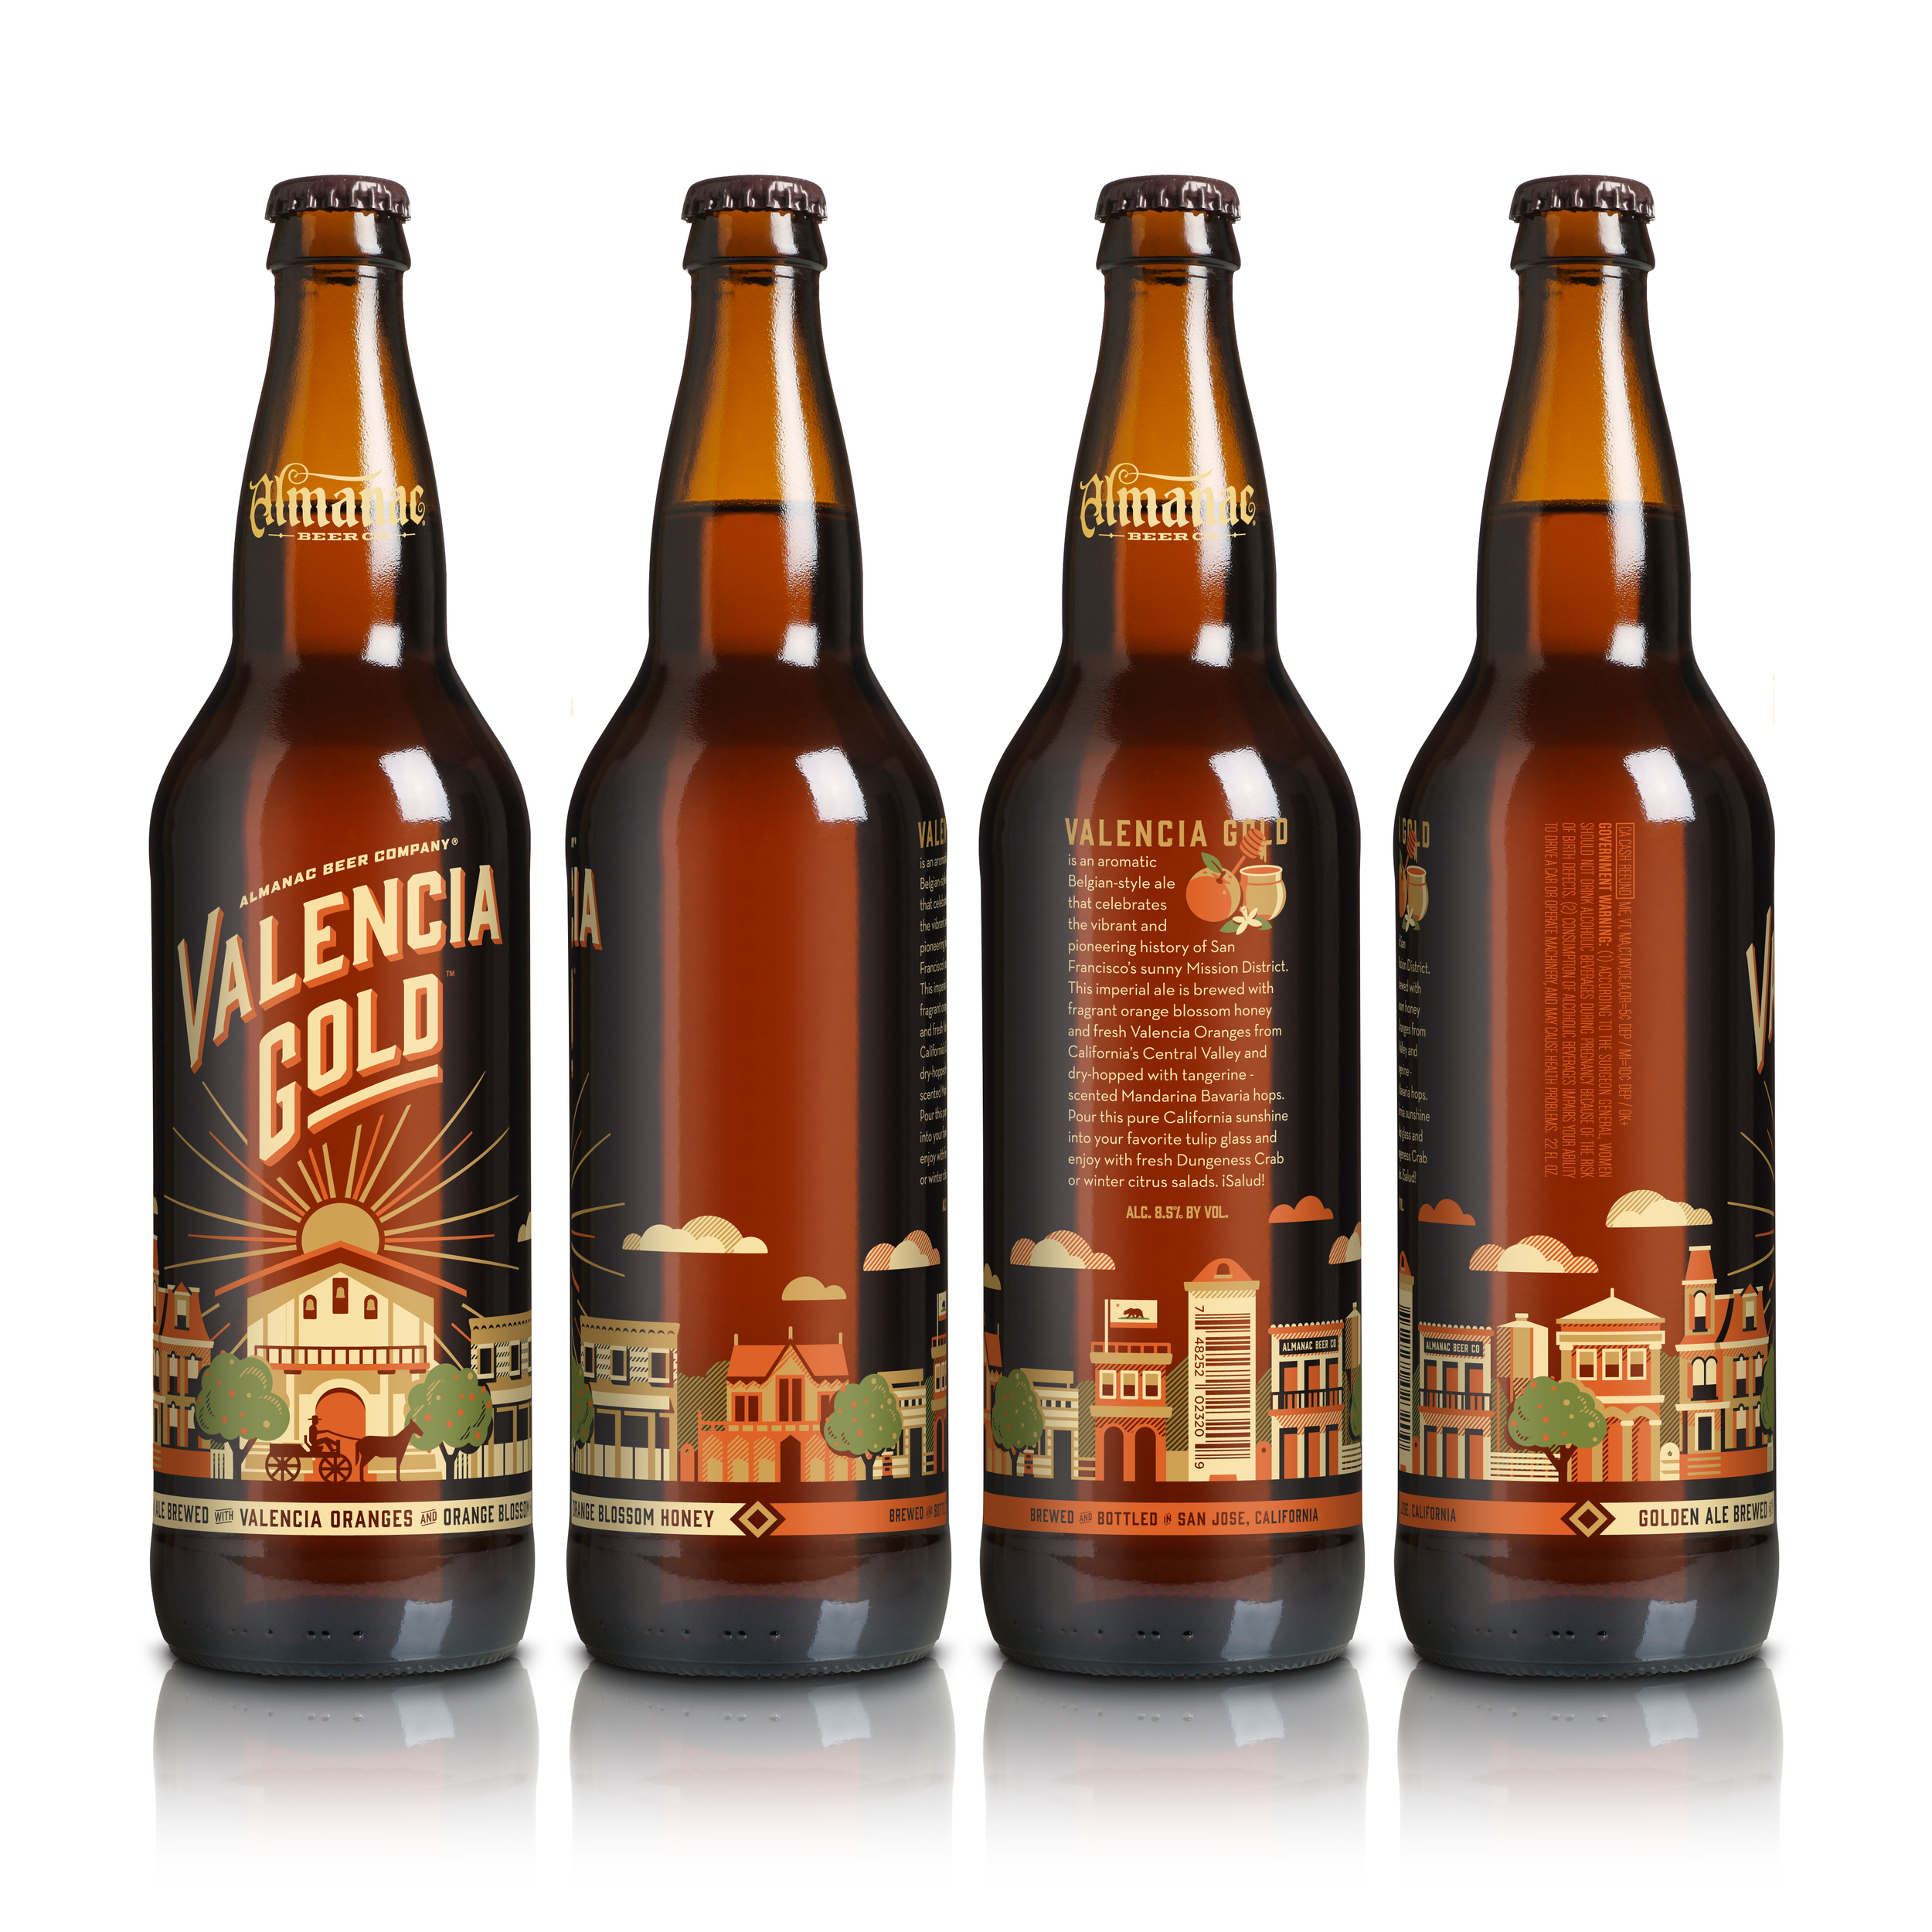 Almanac's Valencia Gold bottle design by DKNG